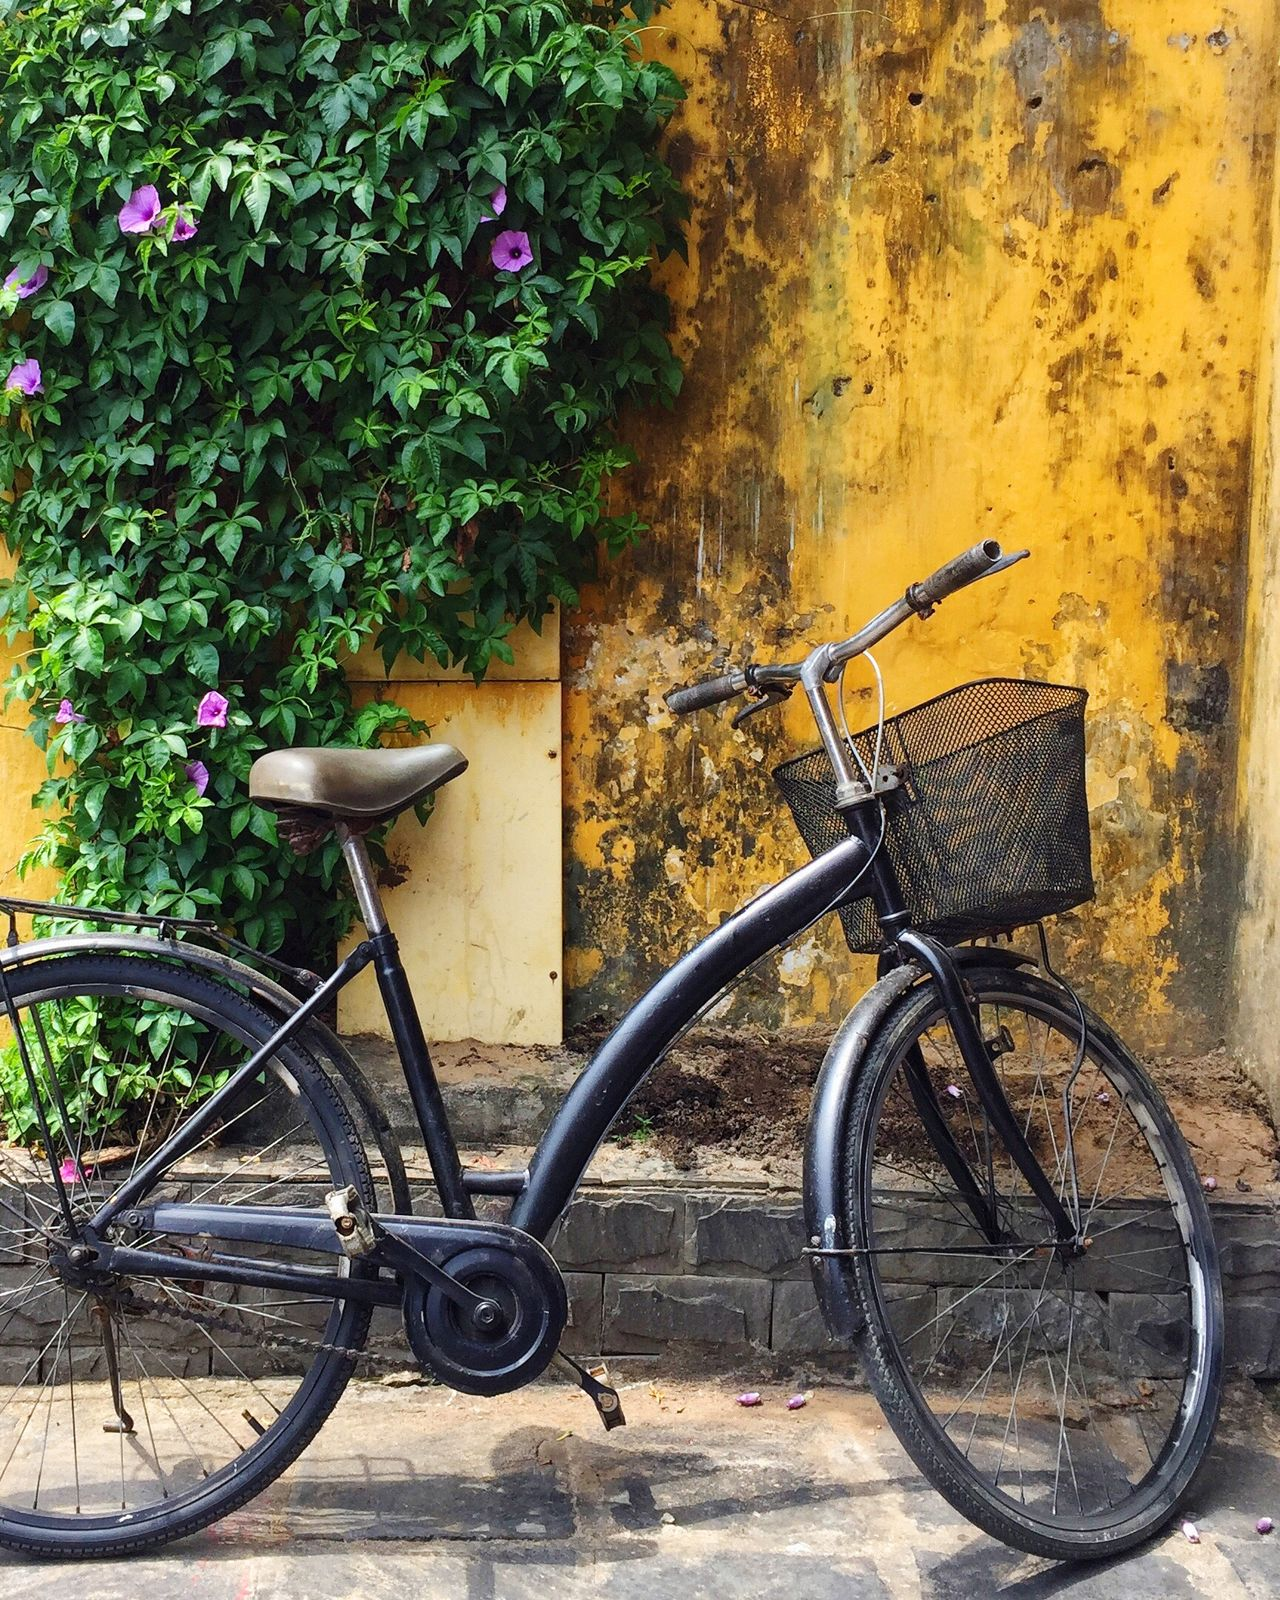 Hoi An, Vietnam Bicycle Transportation Wall Textures Bicycle Parking Hoi An Vietnam Streetphoto_color Streetphotography Travel Photography